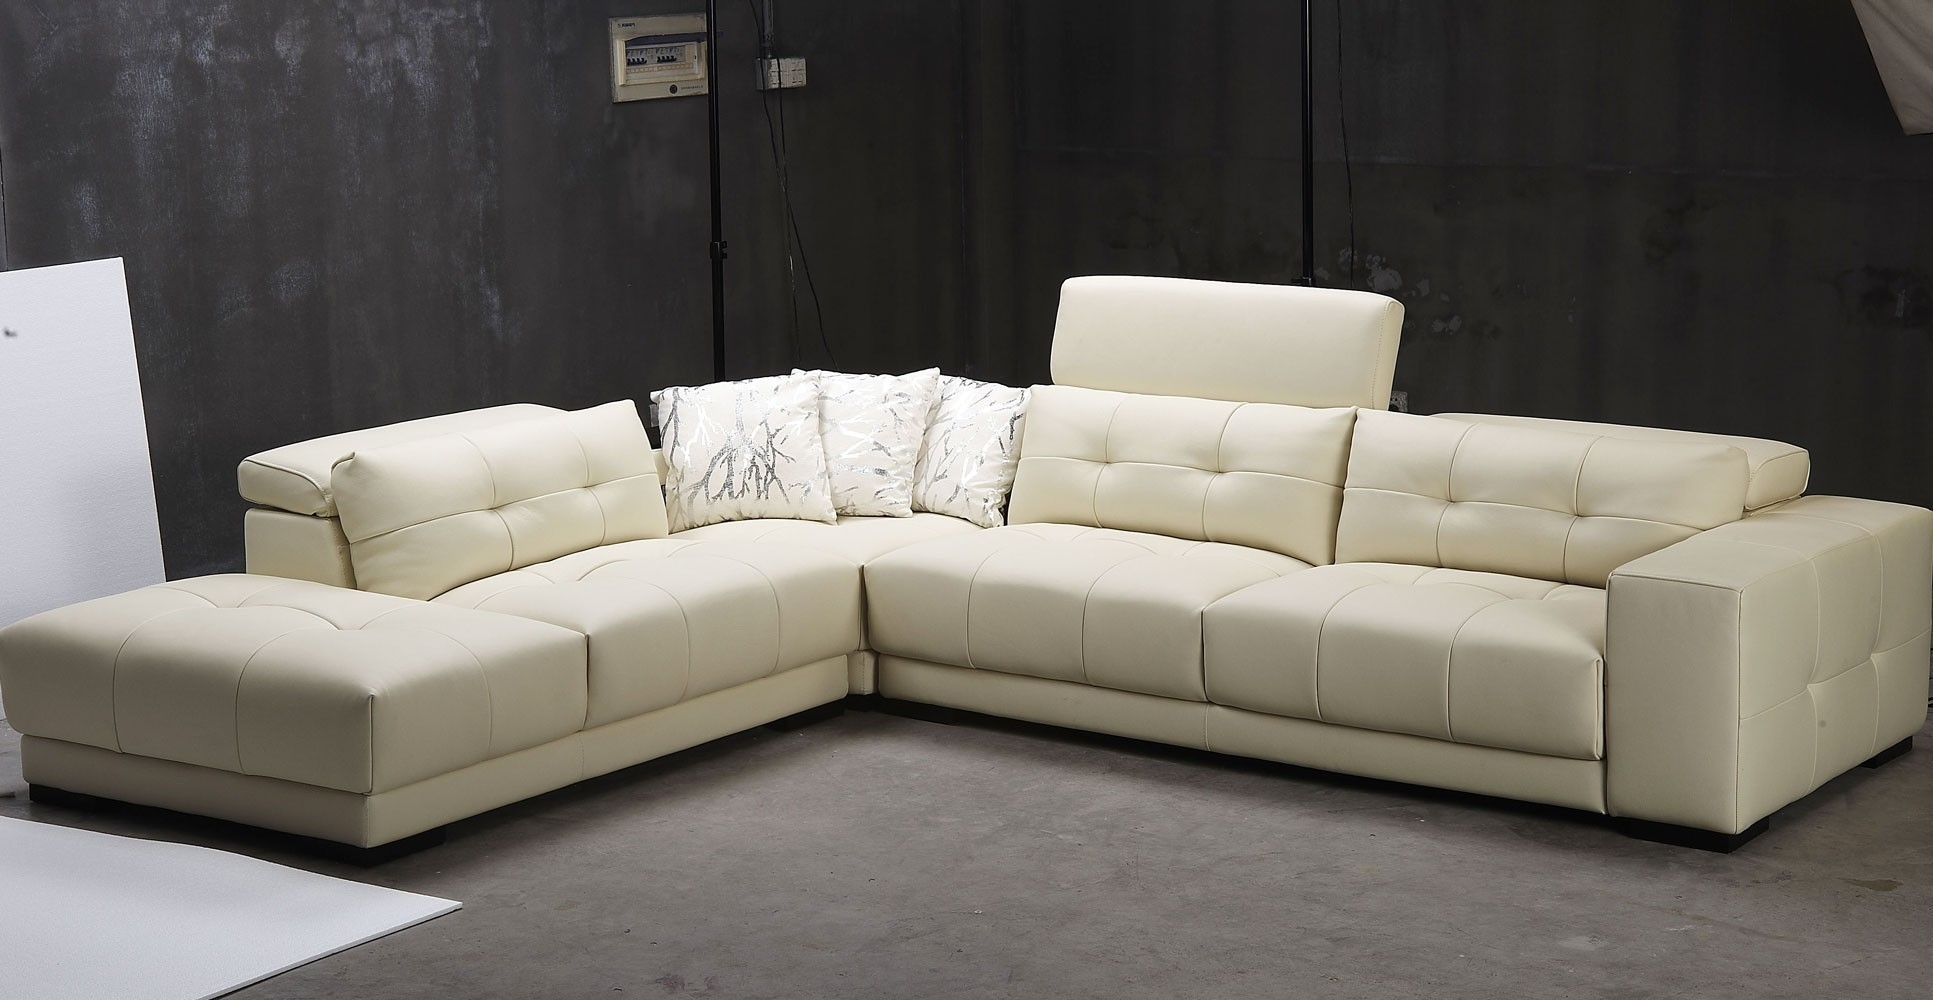 Jedd Fabric Reclining Sectional Sofa Reviews Sofas Contemporary San Regarding Jedd Fabric Reclining Sectional Sofas (Image 8 of 10)